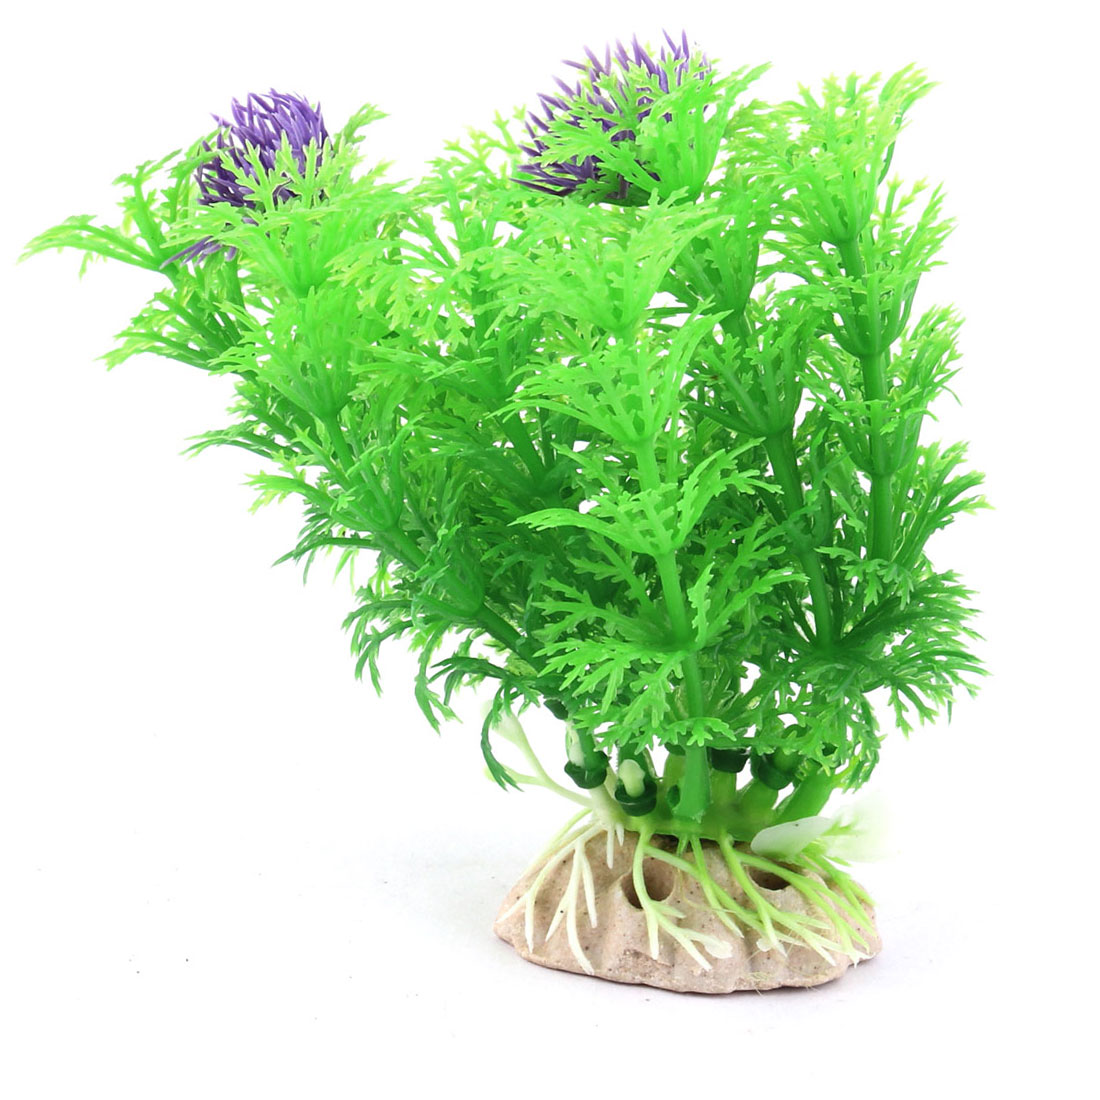 Aquarium Fish Bowl Ceramic Base Plastic Underwater Plant Grass Landscaping Green